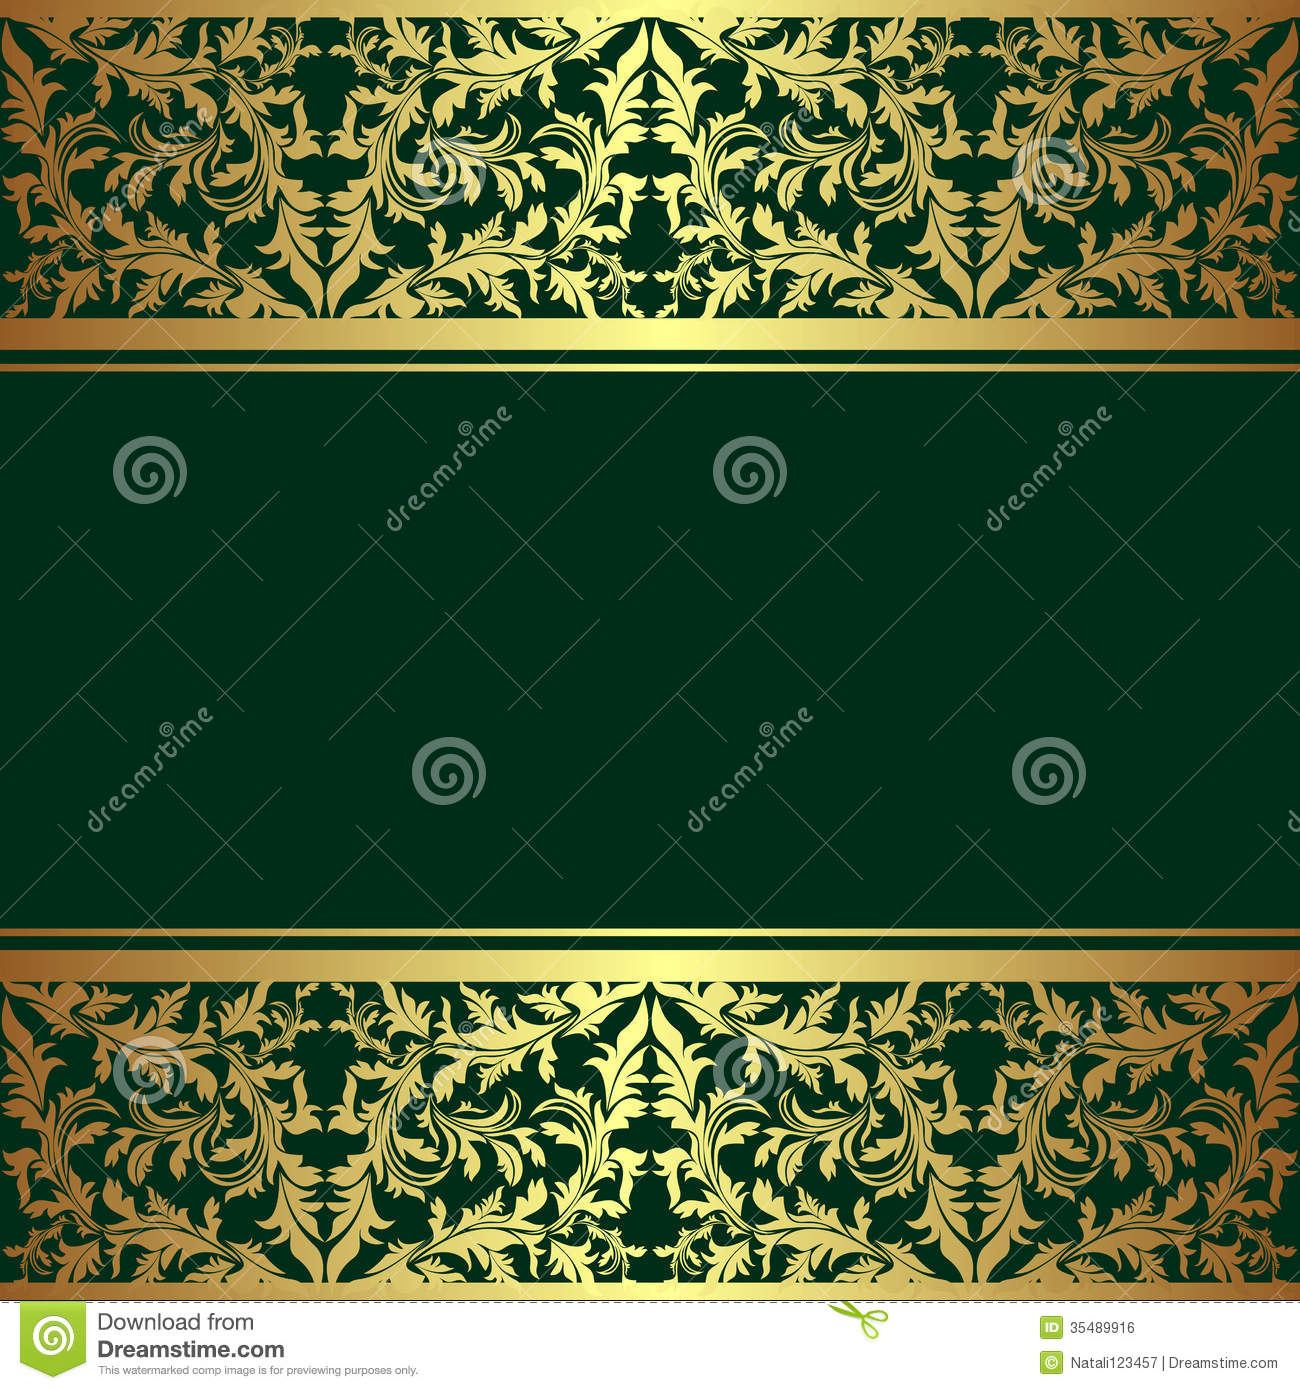 Frame design for wedding invitation vector border in victorian style - Luxury Rifle Green Background With Golden Borders Royalty